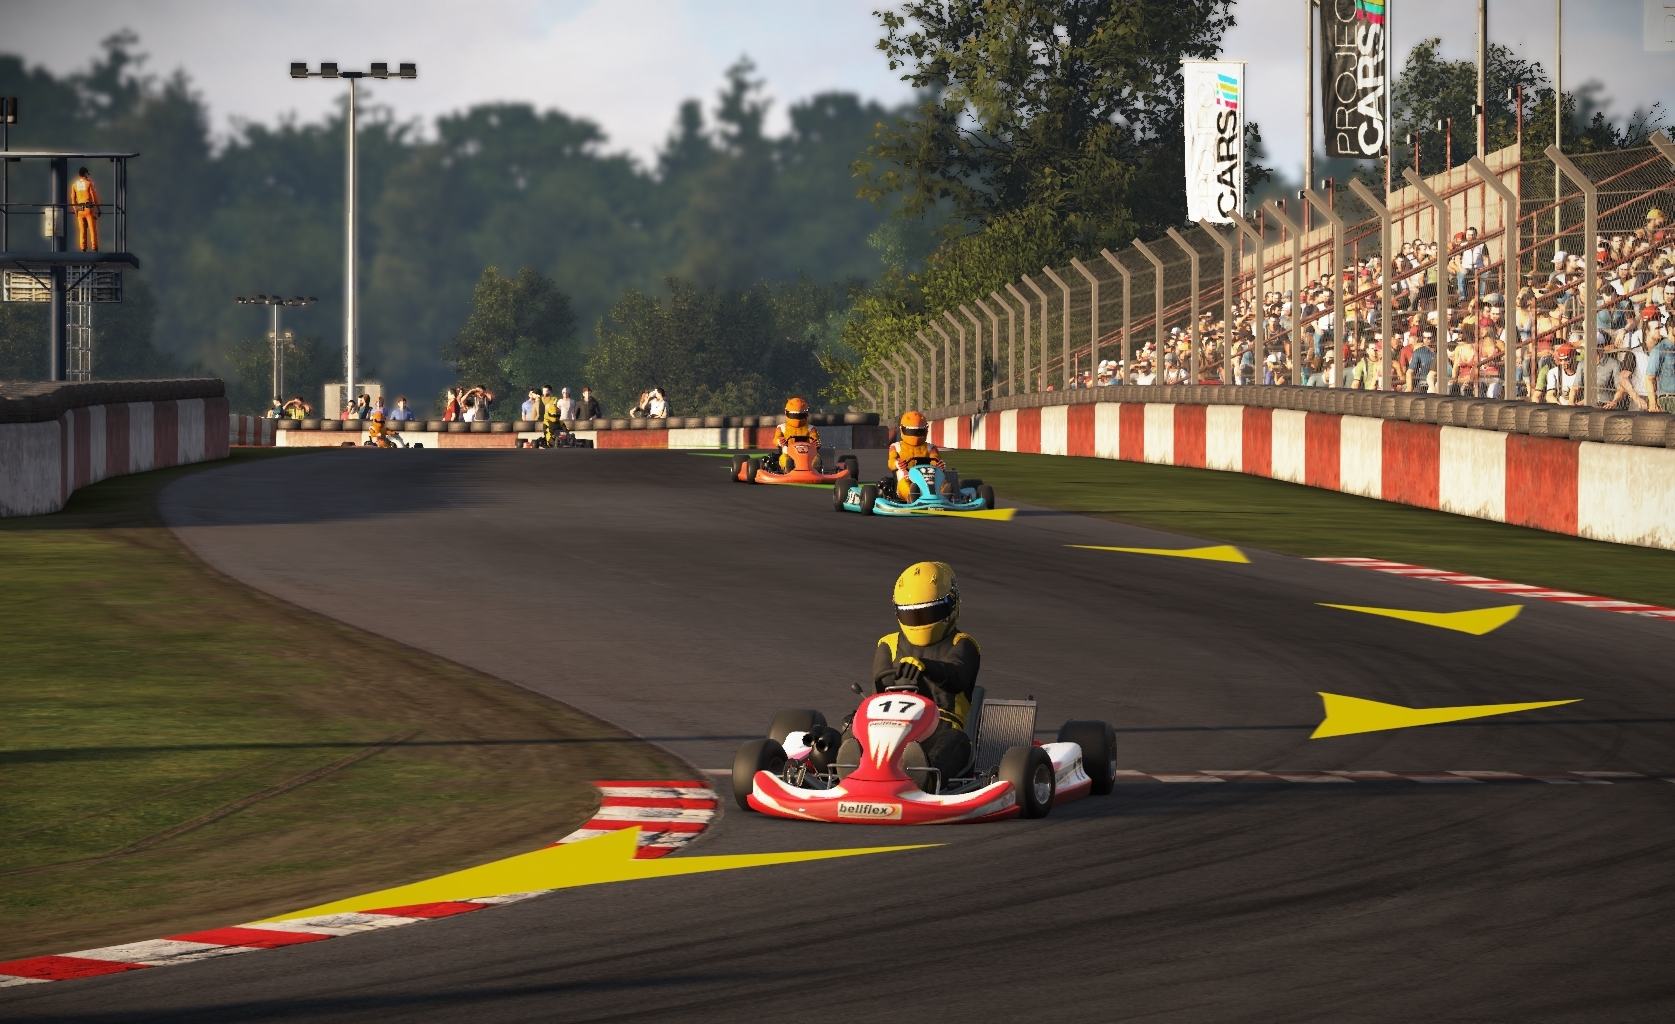 Project Cars Is A Beautiful Racing Sim With AI That Drives Like